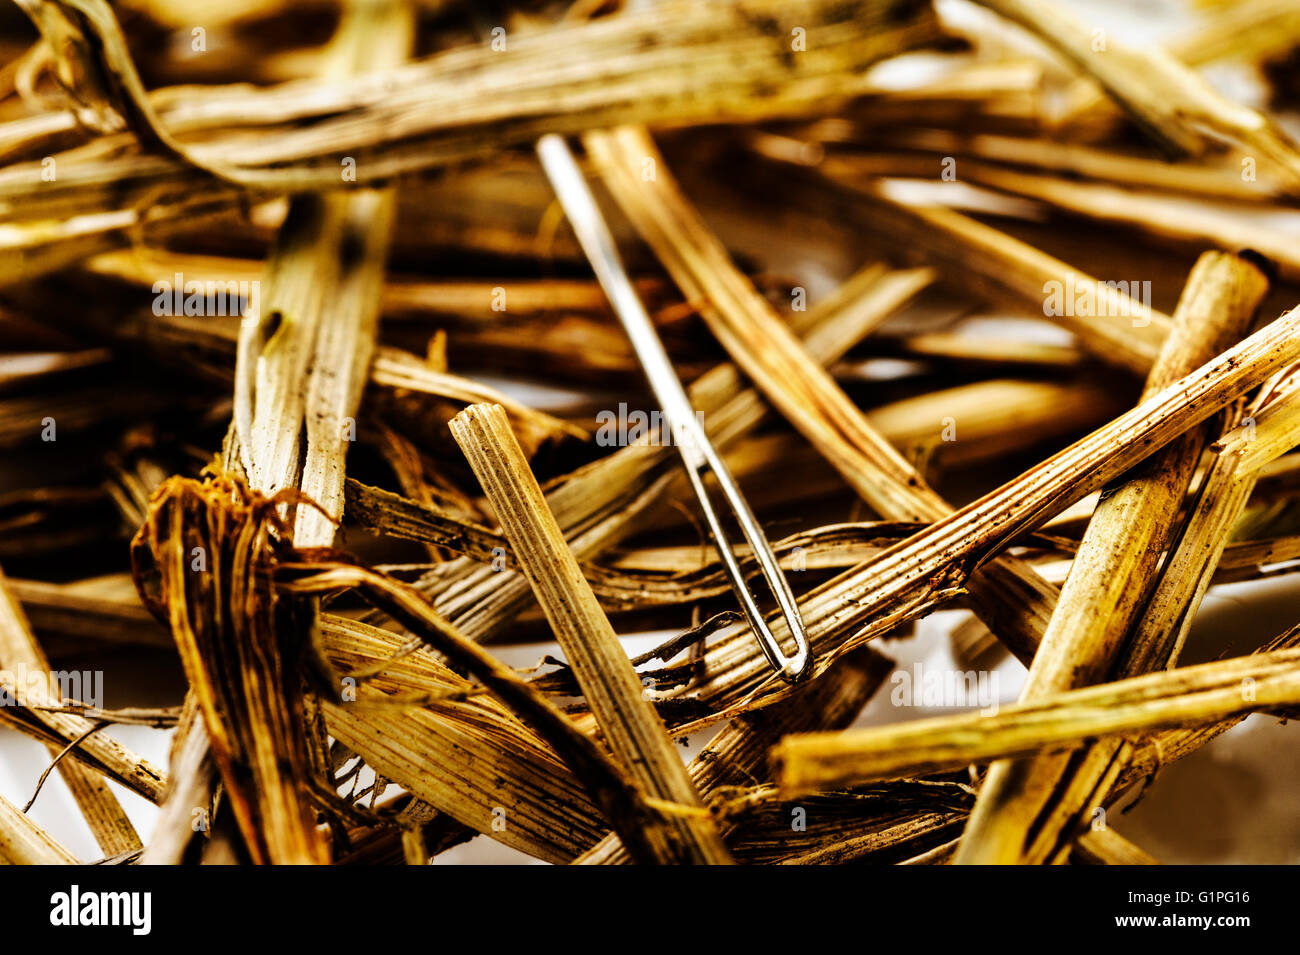 Looking for lost  needle in haystack. Searching. Lost and found. - Stock Image